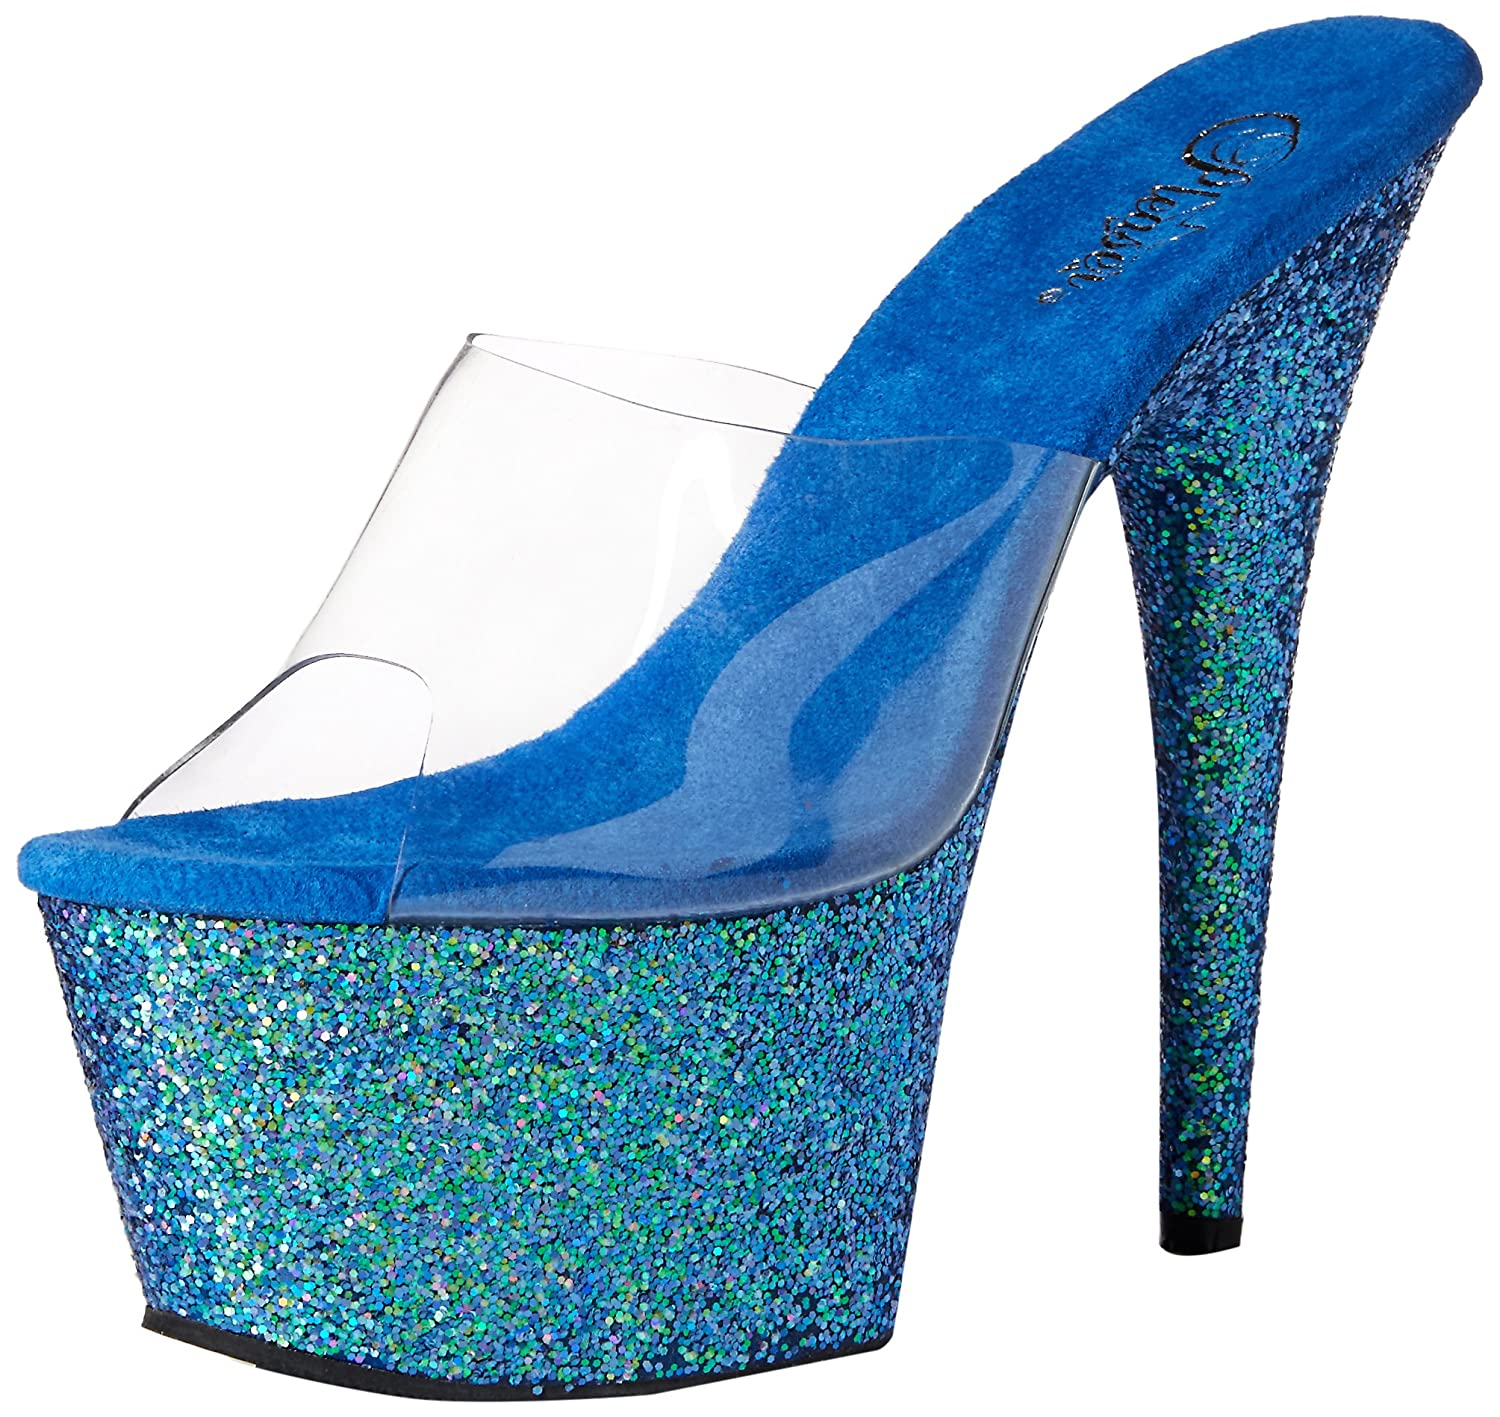 Pleaser Adore 701Lg, 701Lg, B07DKSL47H Sandales Femme Clr 3867/Blue Holo Glitter b96173e - therethere.space